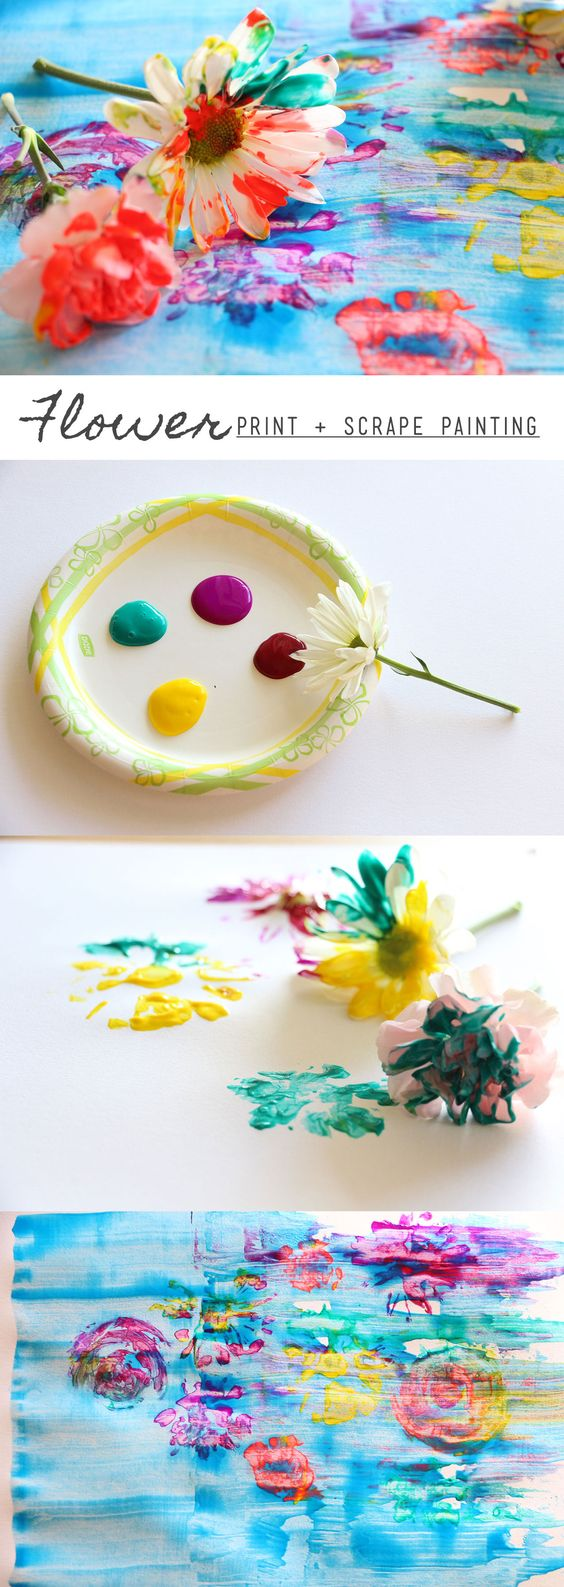 Flower Print & Scrape Painting  - fun Spring art project for kids: